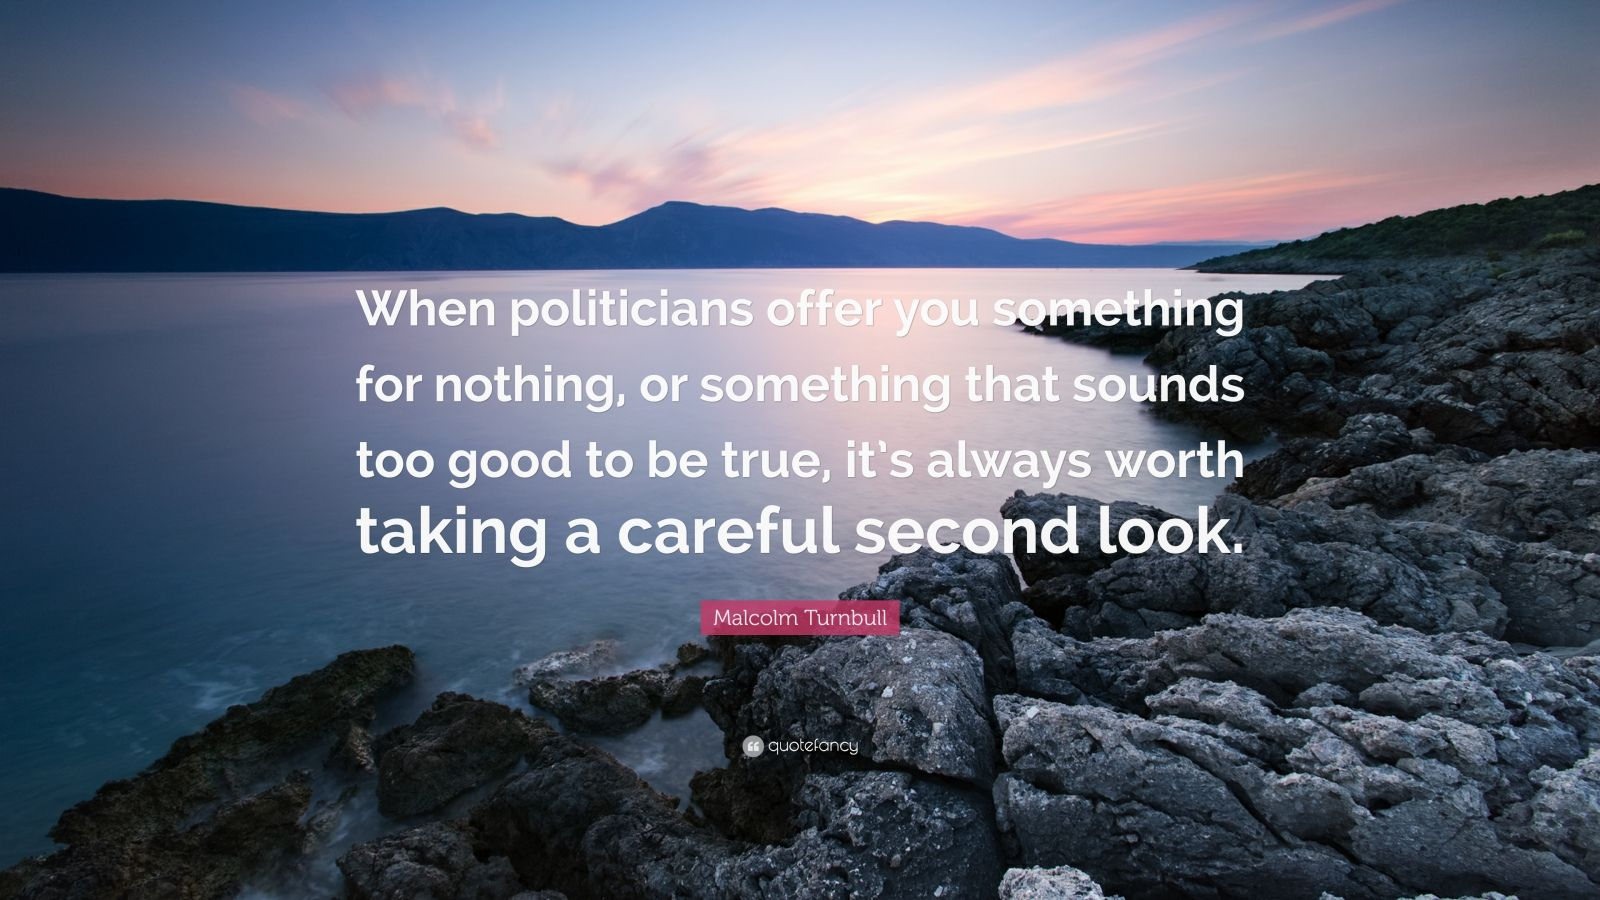 """Malcolm Turnbull Quote: """"When politicians offer you something for nothing, or something that sounds too good to be true, it's always worth taking a careful second look."""""""